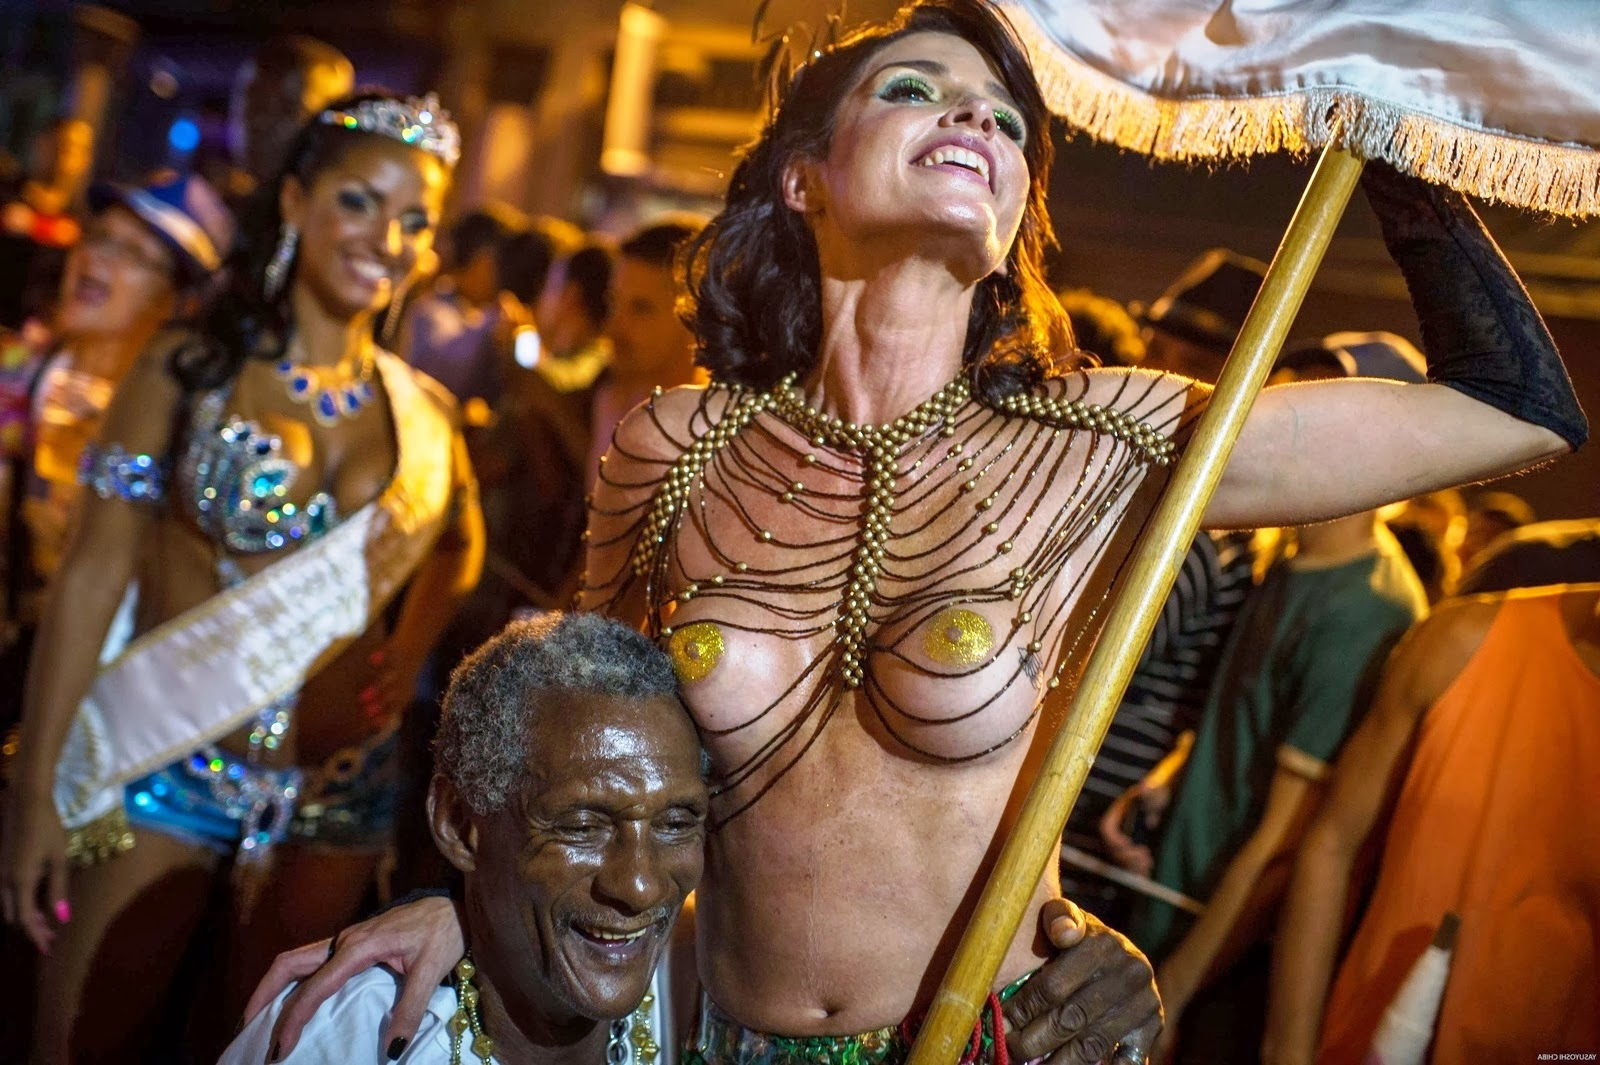 Topless dancers during a parade in Rio de Janeiro this February 27.